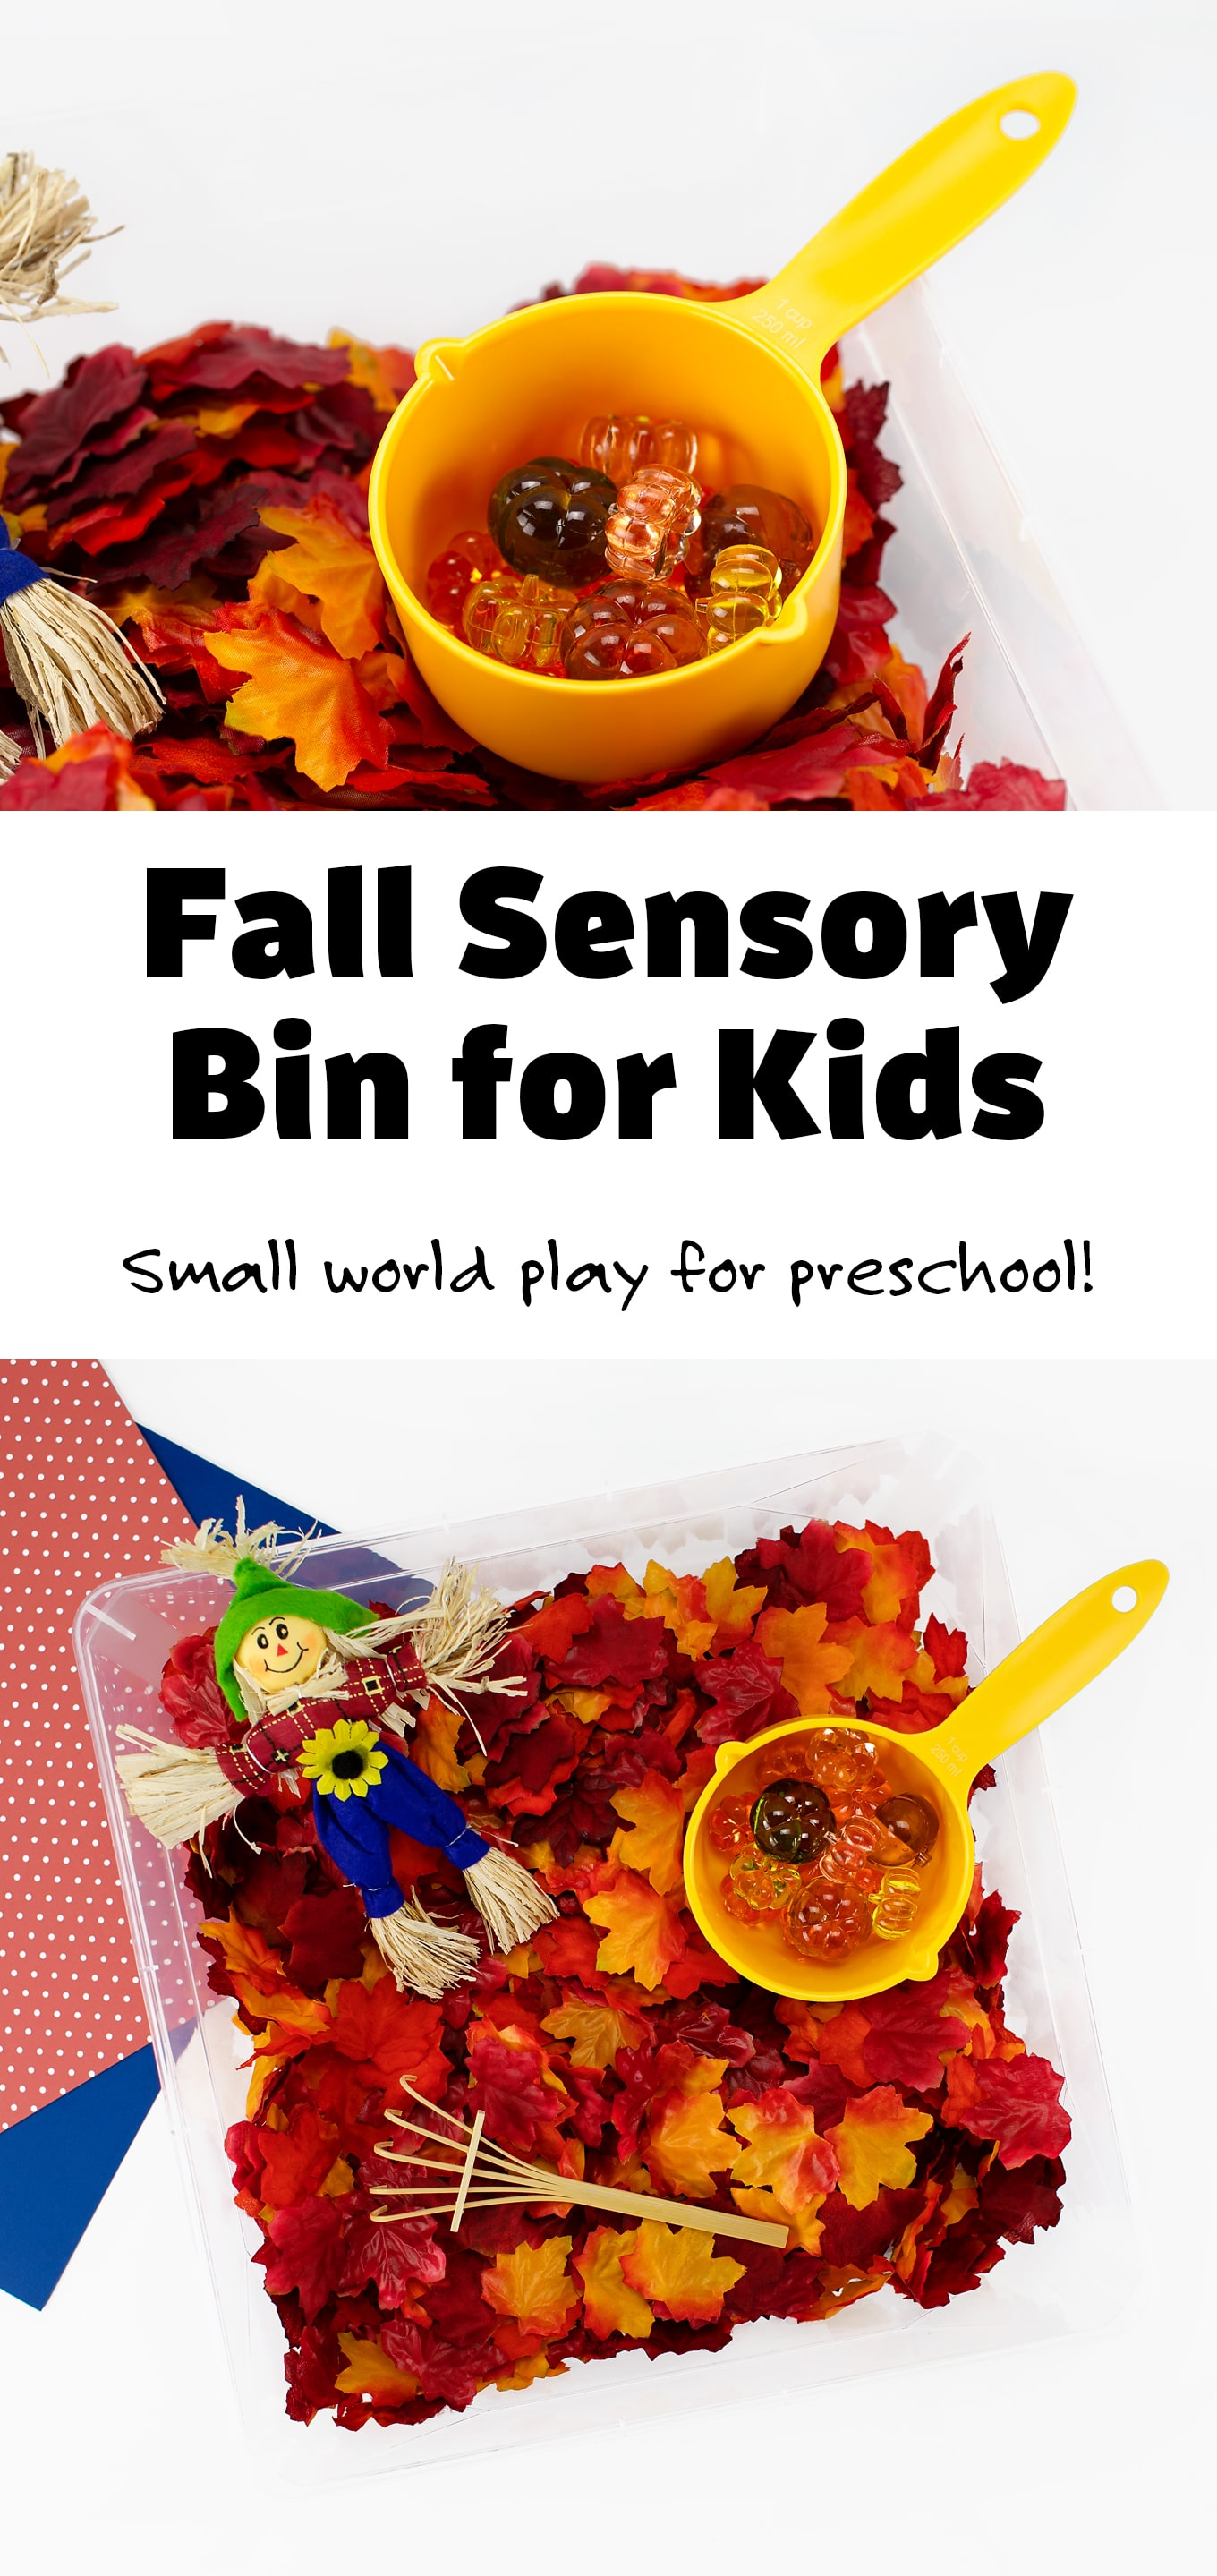 Packed with crunchy fall leaves, shiny gems, and a friendly scarecrow, this fall sensory bin is perfect for autumn learning and play. #fallsensorybin #preschool #craftsforkids via @firefliesandmudpies